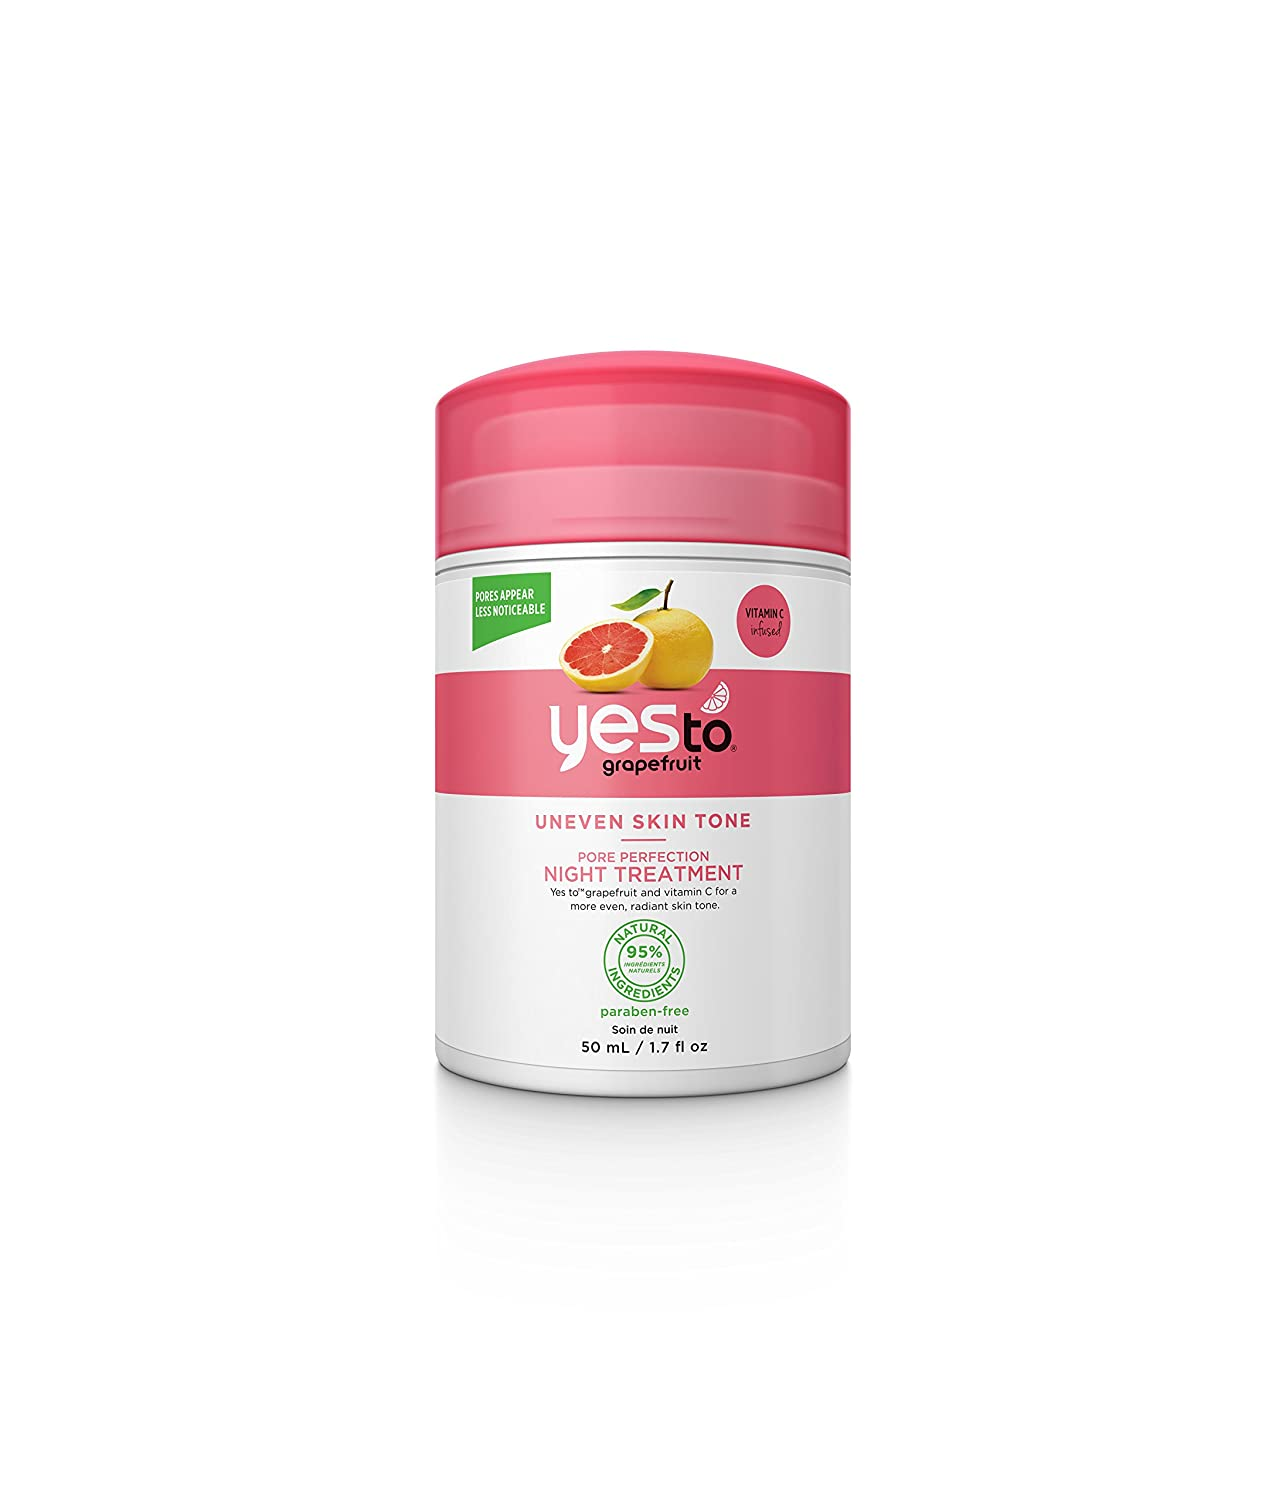 Yes to Grapefruit Pore Perfection trattamento notte 6315111